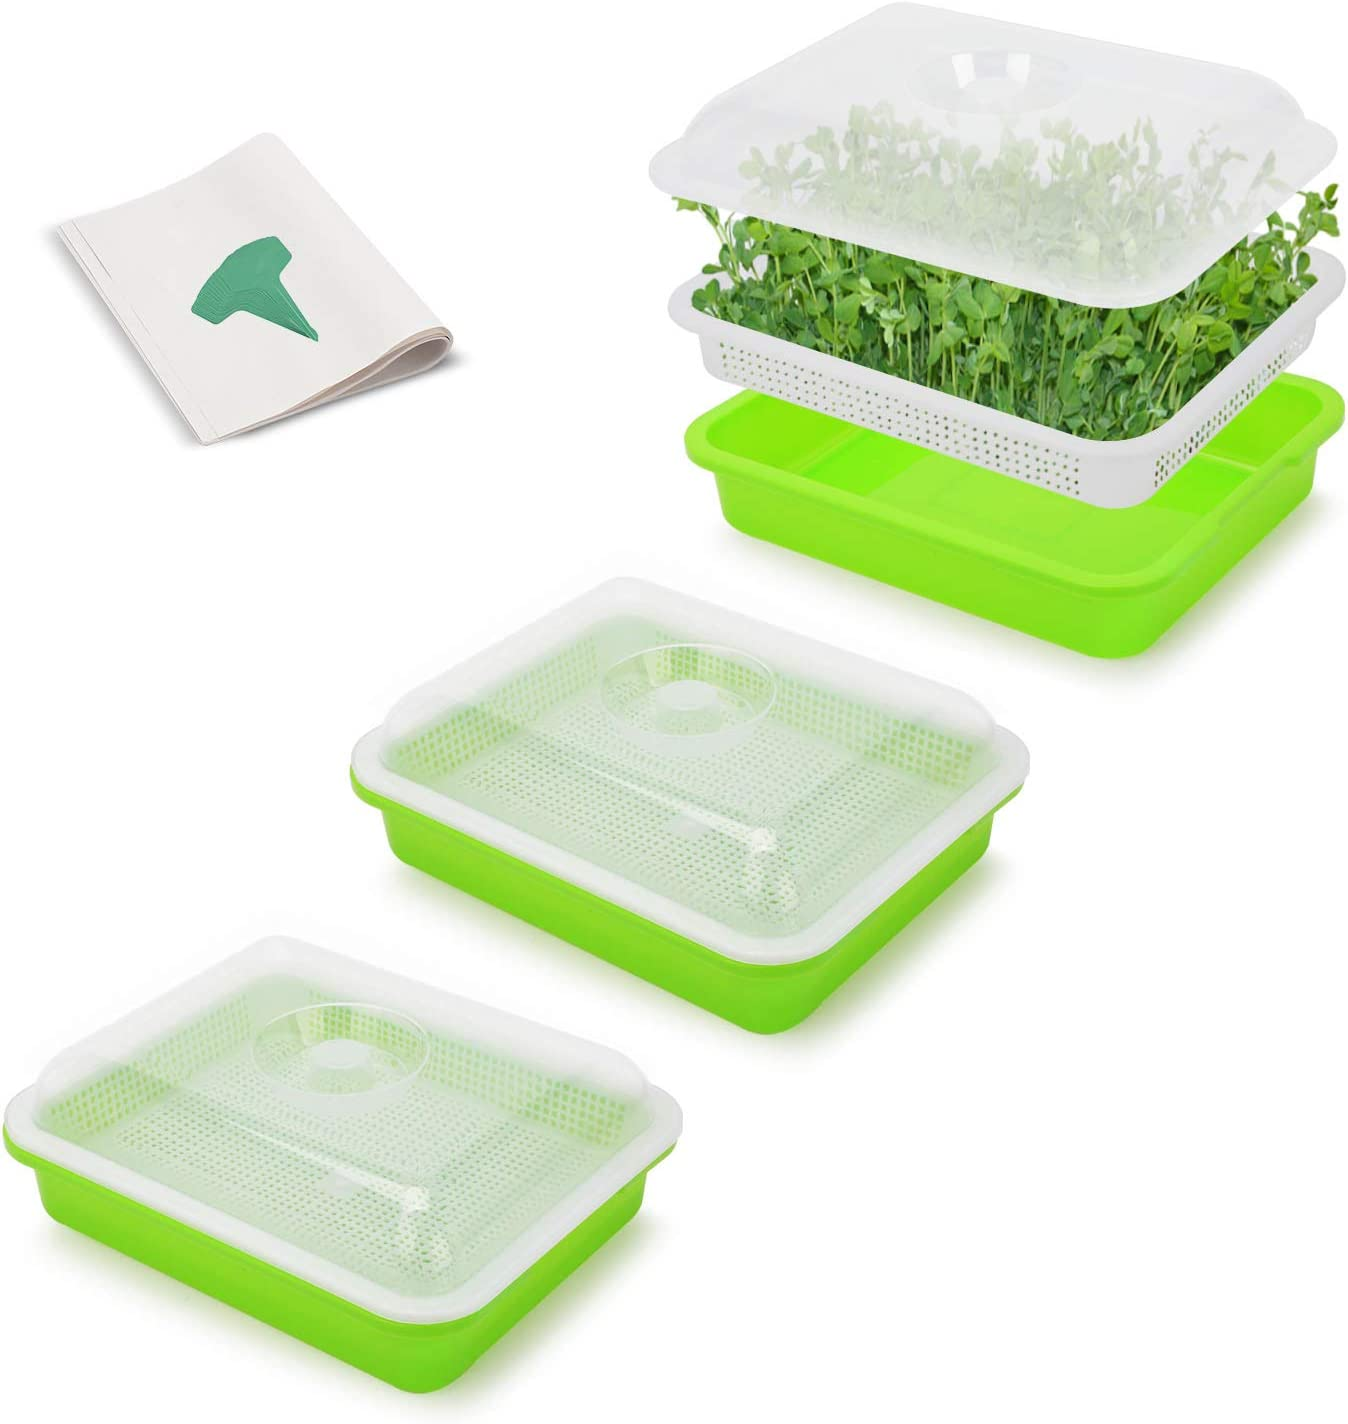 GROWNEER Sales results No. 1 6 store Packs Seed Sprouter with Trays Germination Tray